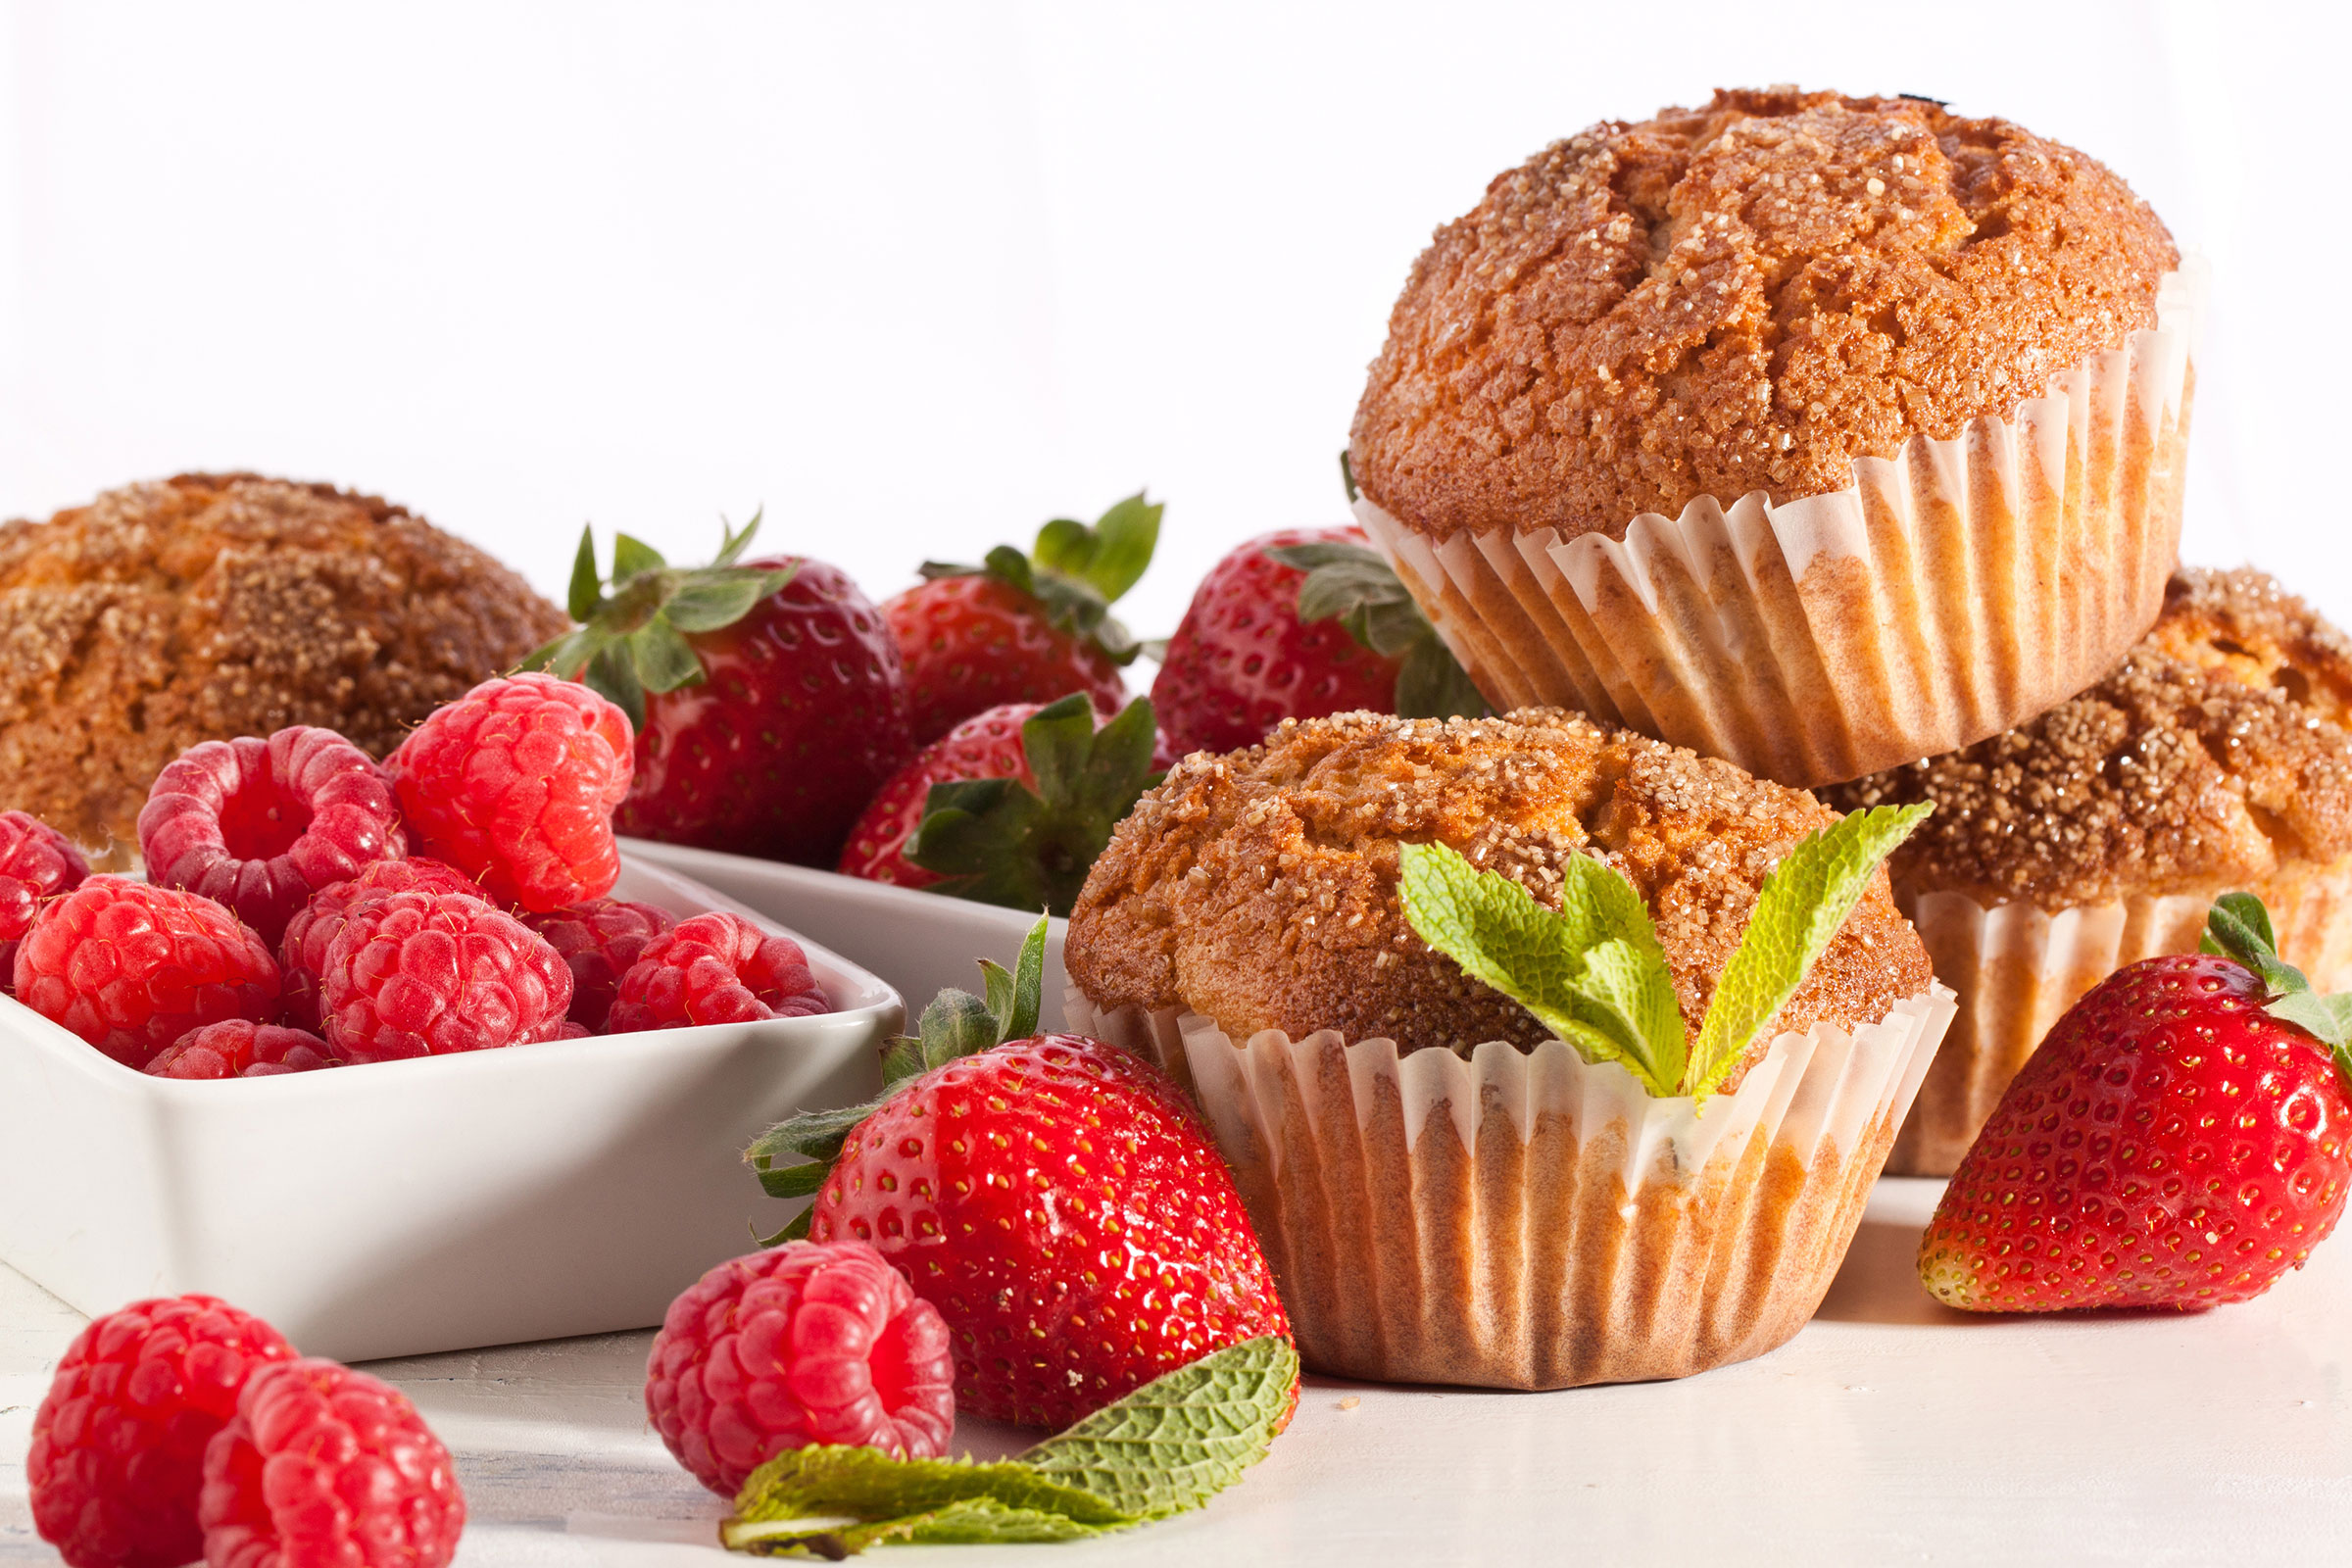 muffins-and-berries